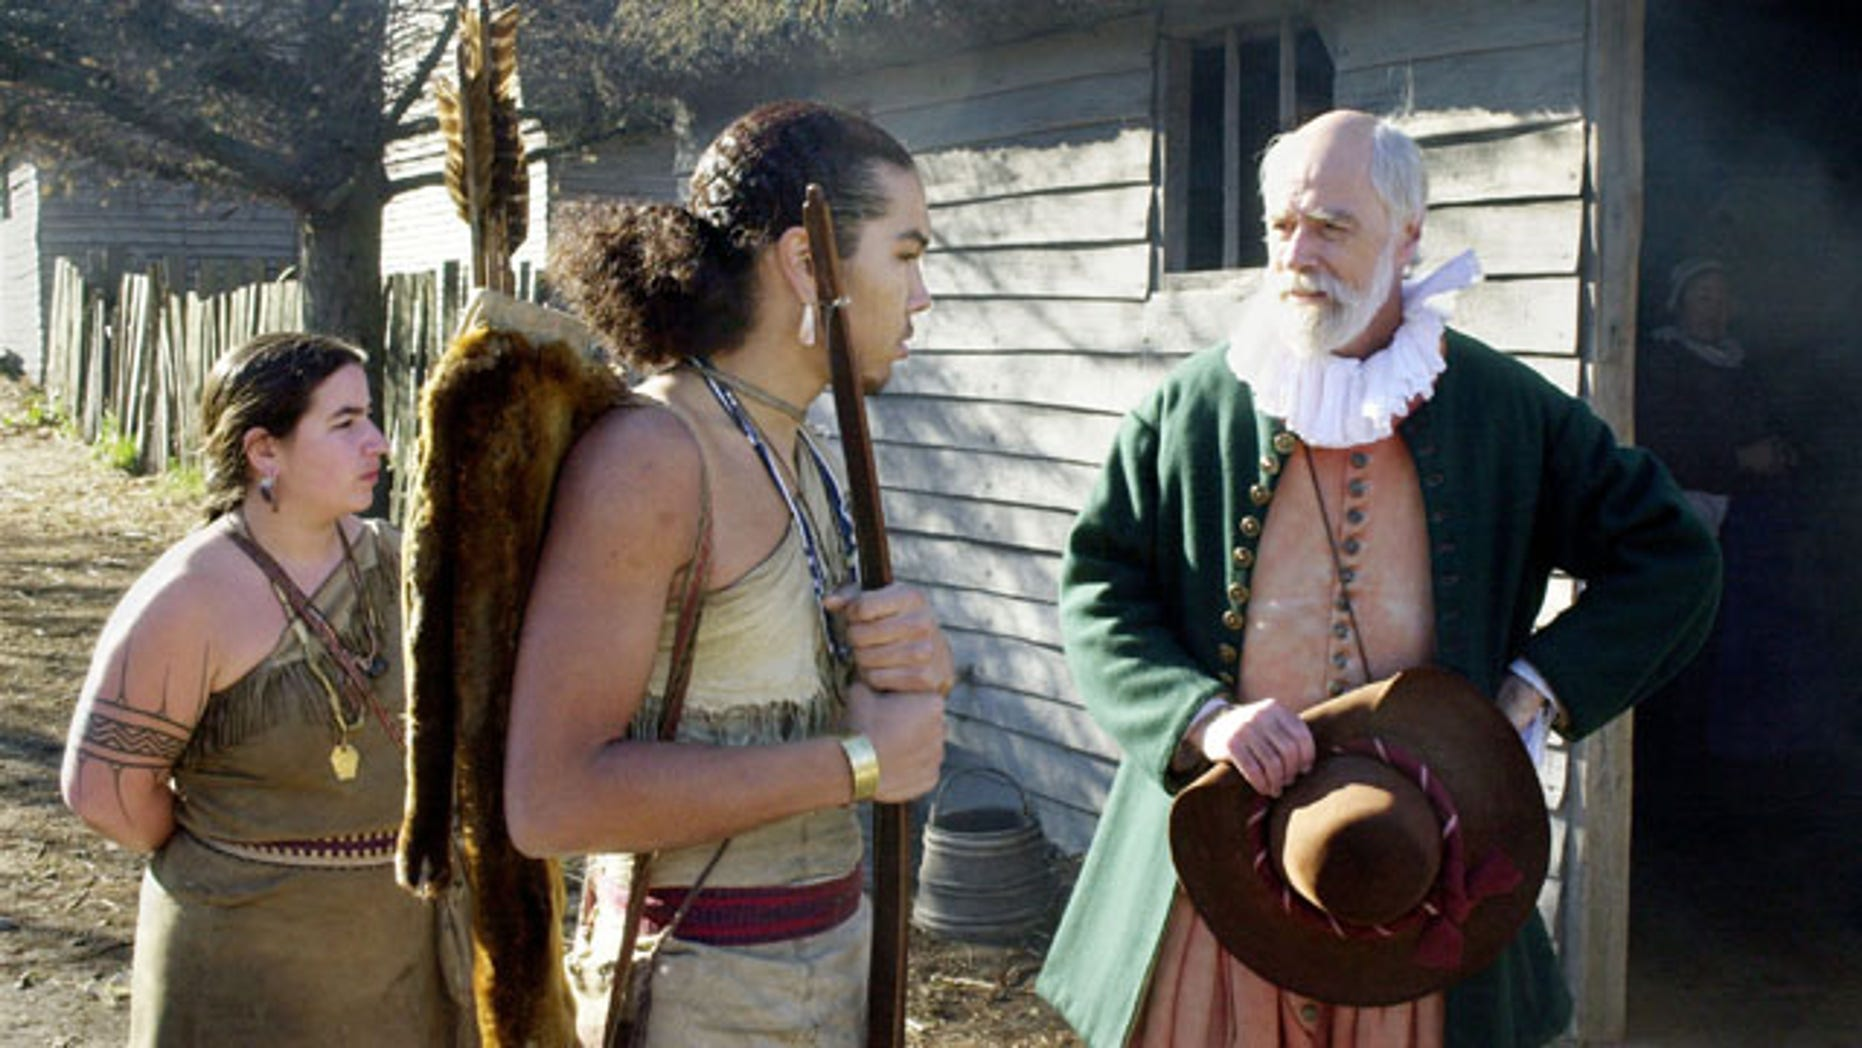 PLYMOUTH, MA - NOVEMBER 25:  John Kemp (R) portrays pilgrim Steven Hopkins meeting with the colonists Wampanoag Indian interpreter Hobbamock, played by Jonathan Perry (C), as another Wampanoag, played by Melanie Roderick (L), looks on November 25, 2003 at Plimoth Plantation in Plymouth, Massachusetts. In real life, parents have the difficult job of teaching their children about the truth about what led to the holiday. (Photo by Michael Springer/Getty Images)